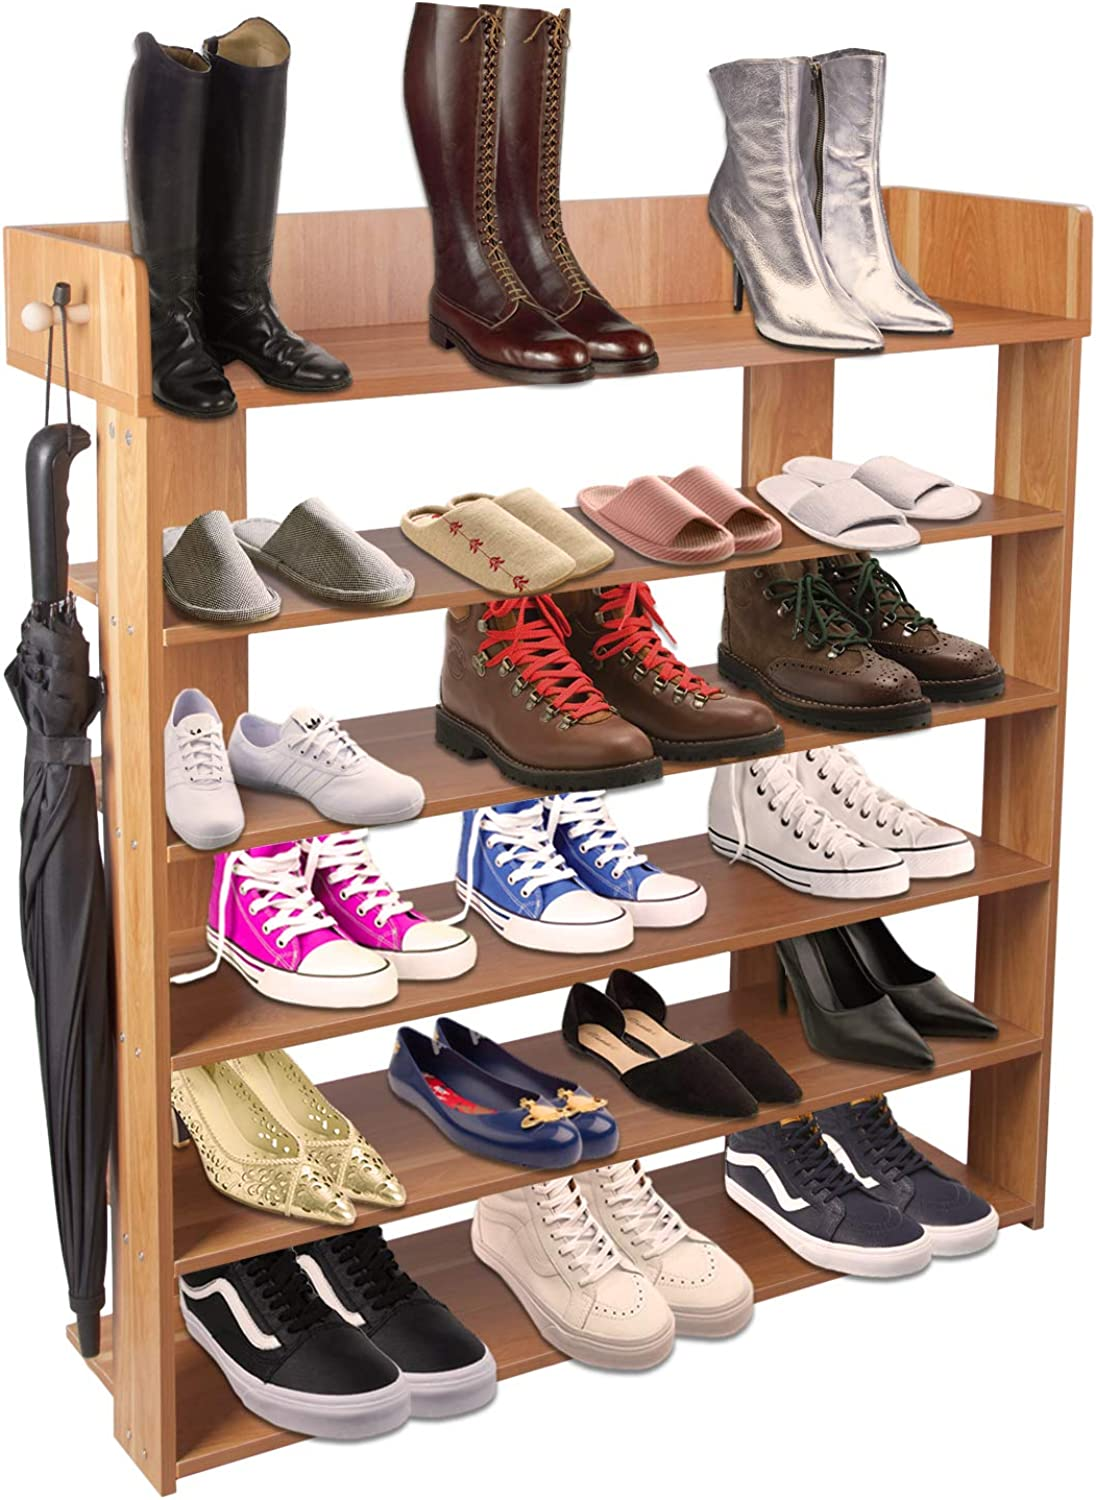 5-Tier shoes Rack Organizer, Entryway shoes Cabinet Storage Rack with Side Hook(Black)